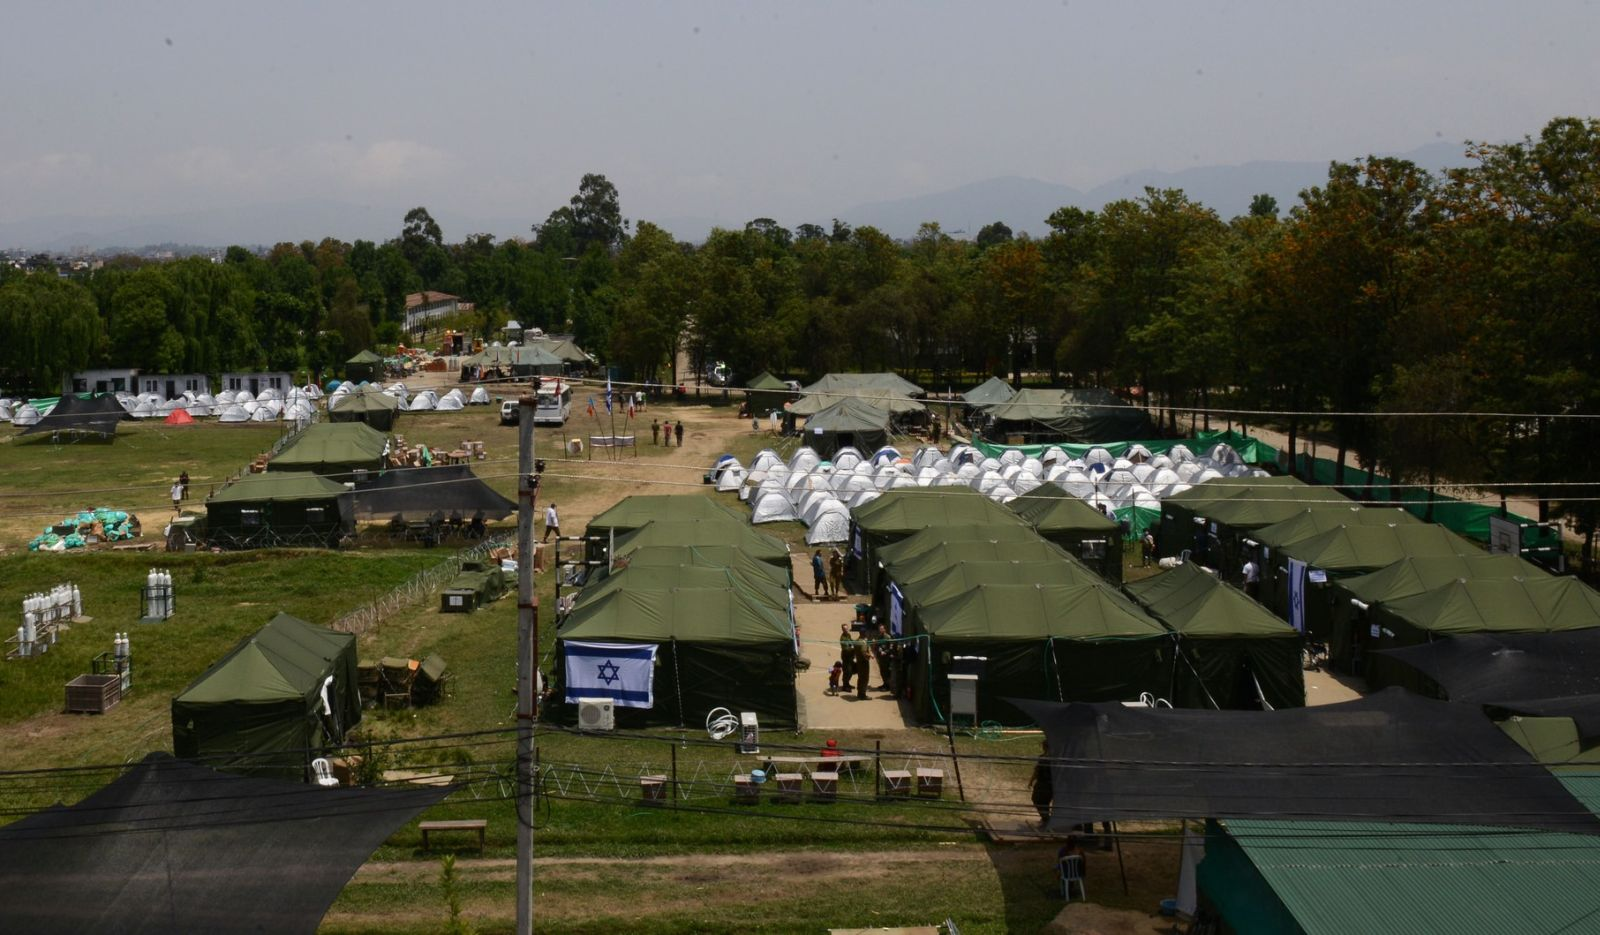 The IDF field hospital in Nepal. Photo: courtesy